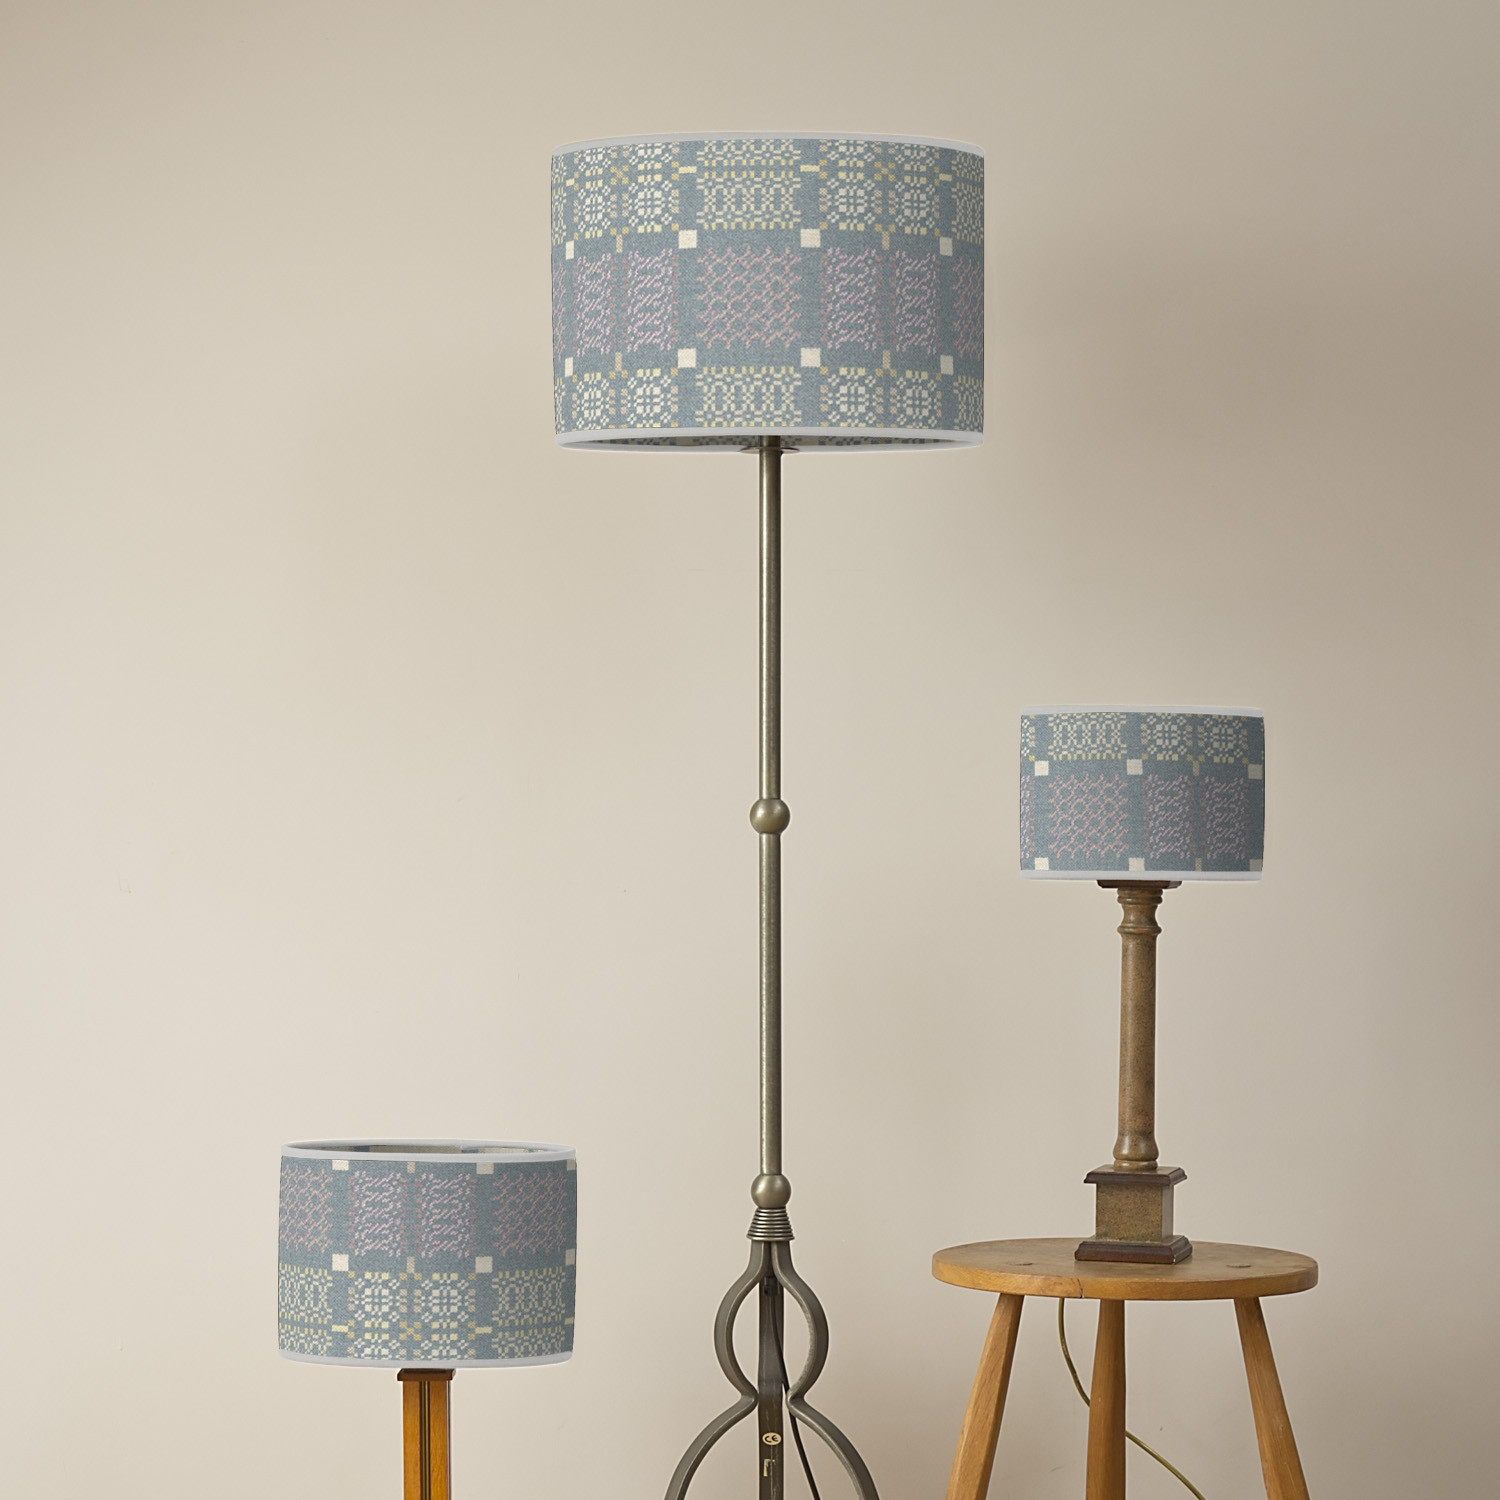 Knot Garden topaz oval lampshades